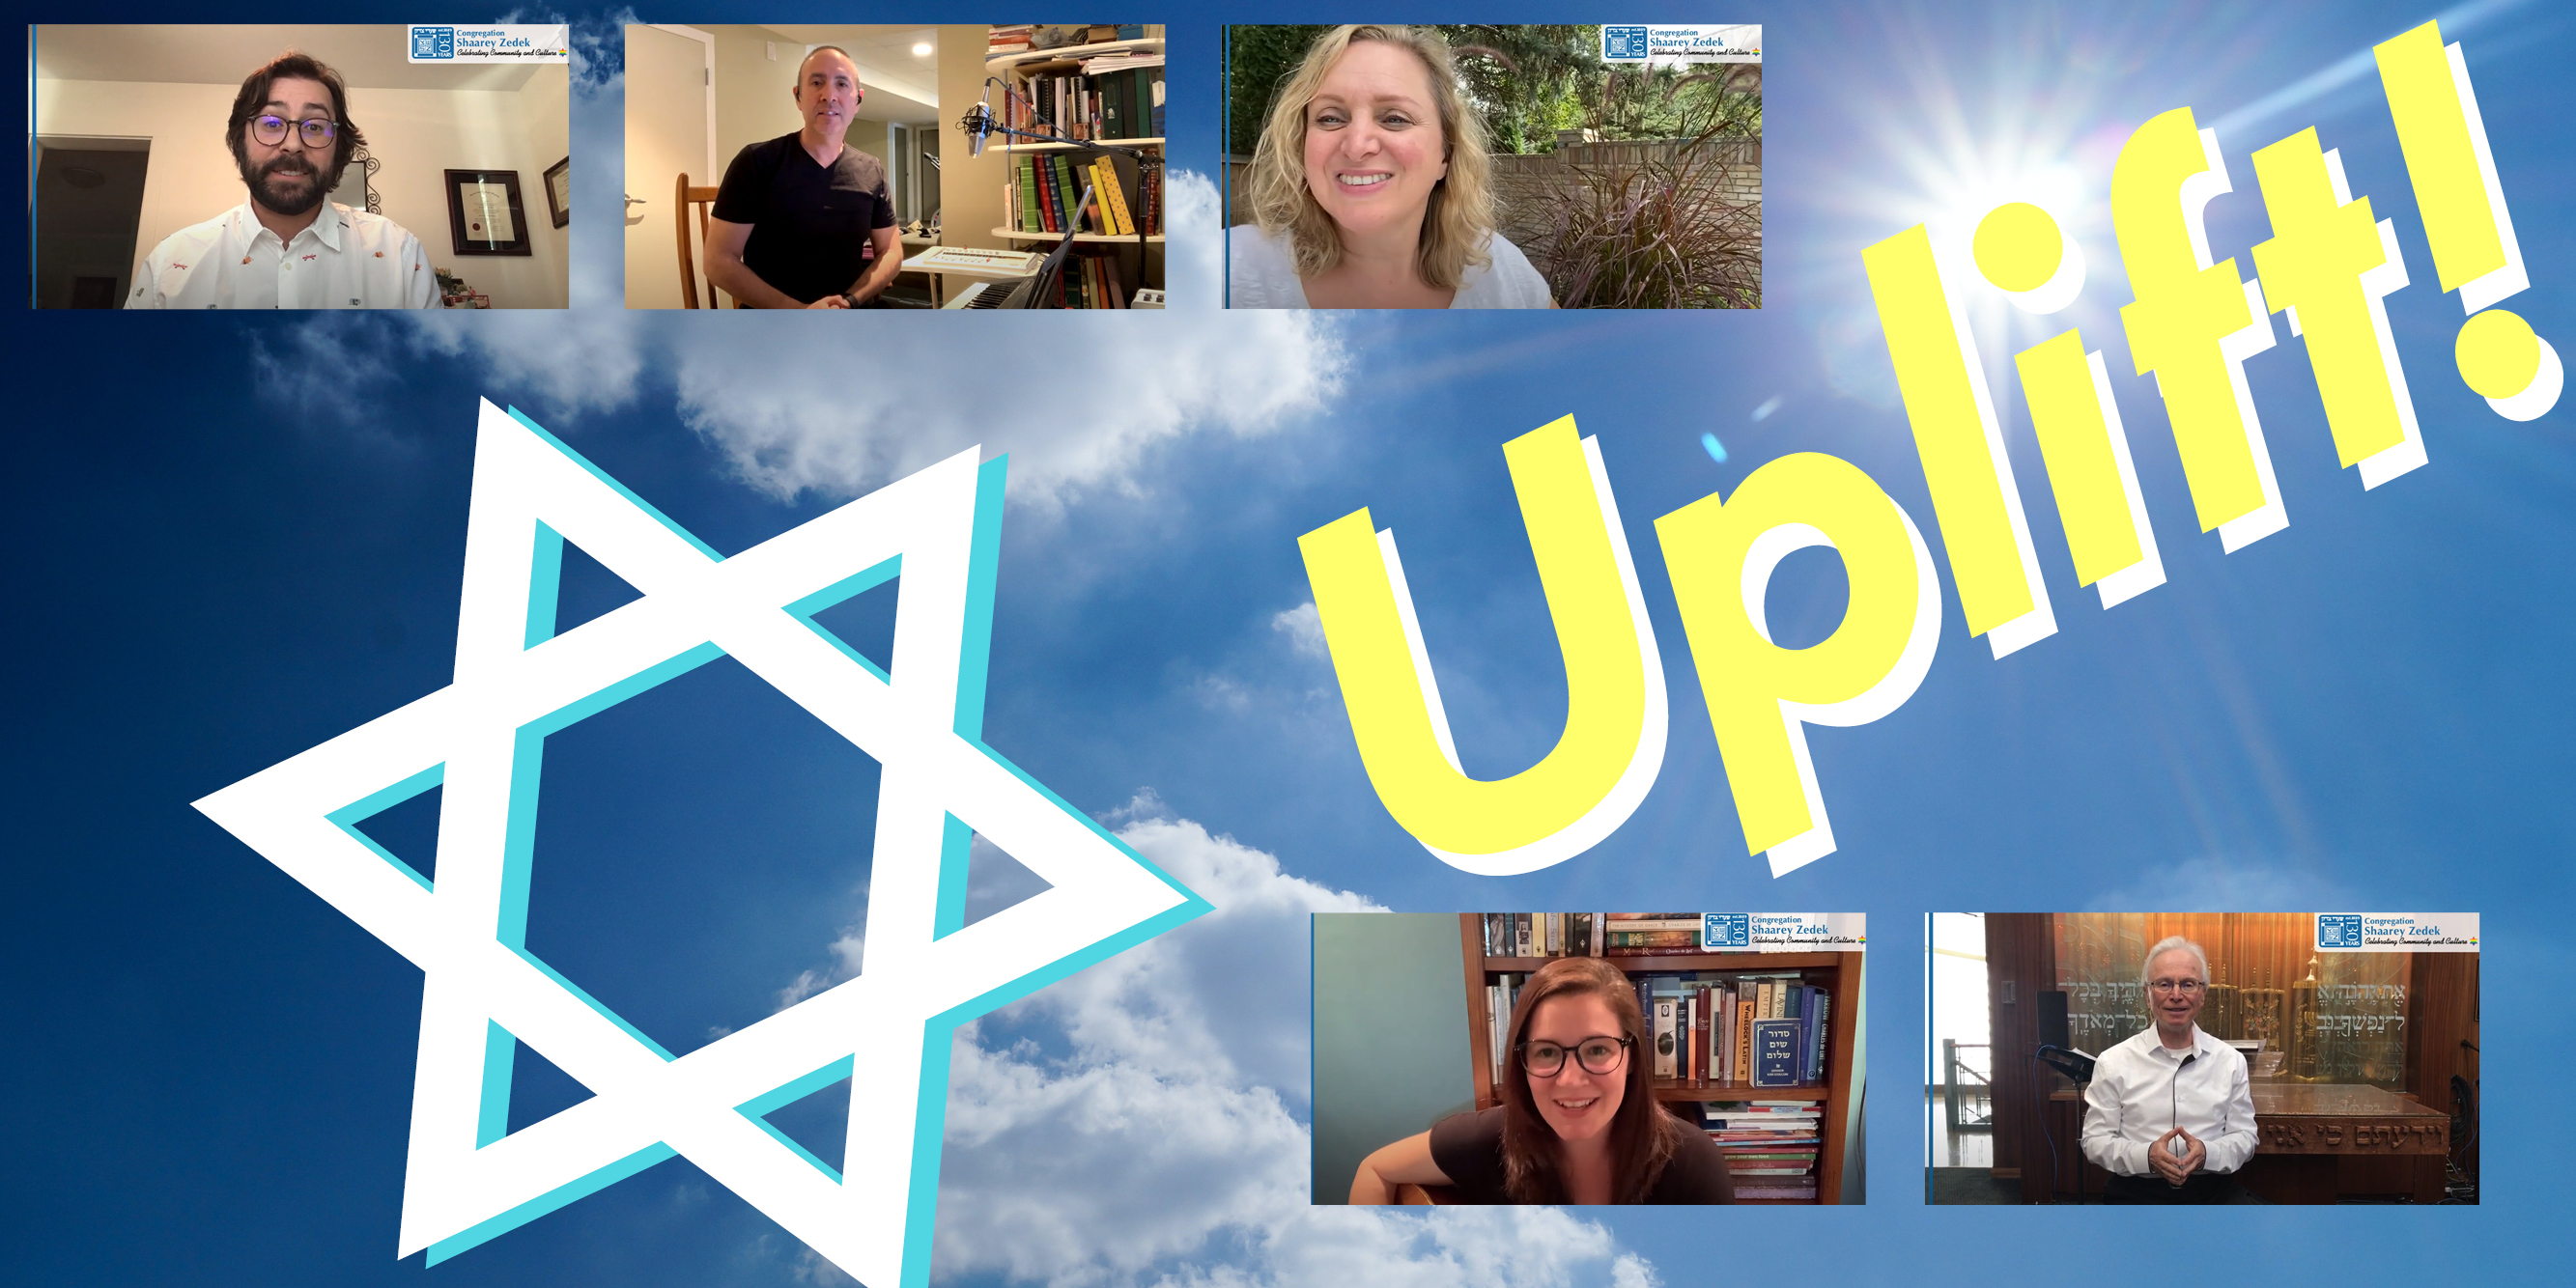 """<a href=""""/streaming/archived-videos""""                                     target="""""""">                                                                 <span class=""""slider_title"""">                                     Uplift!                                </span>                                                                 </a>                                                                                                                                                                                       <span class=""""slider_description"""">New videos published two-to-three times weekly by our Rabbis, Lay Clergy, and Staff! Enjoy archived videos anytime.</span>                                                                                     <a href=""""/streaming/archived-videos"""" class=""""slider_link""""                             target="""""""">                             Watch Now!                            </a>"""